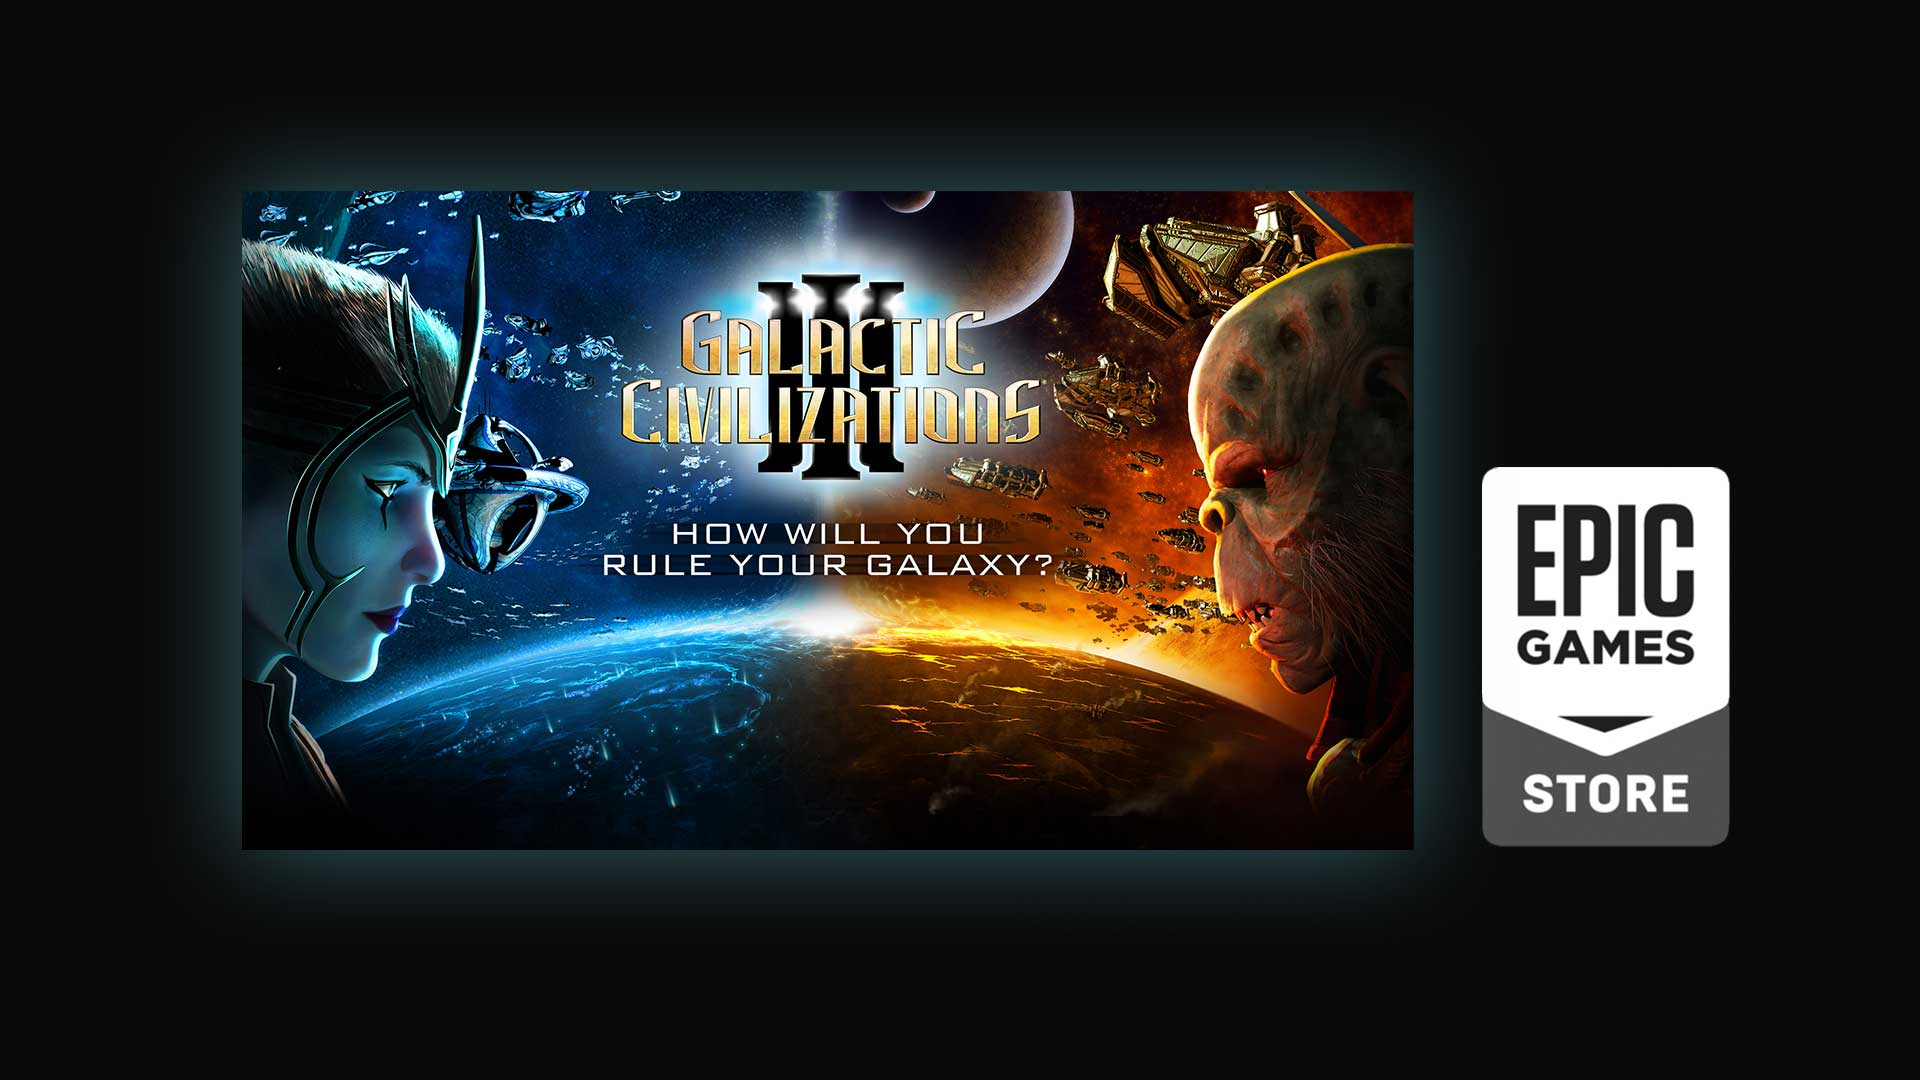 epic game free game 2021 Galactic Civilizations 3